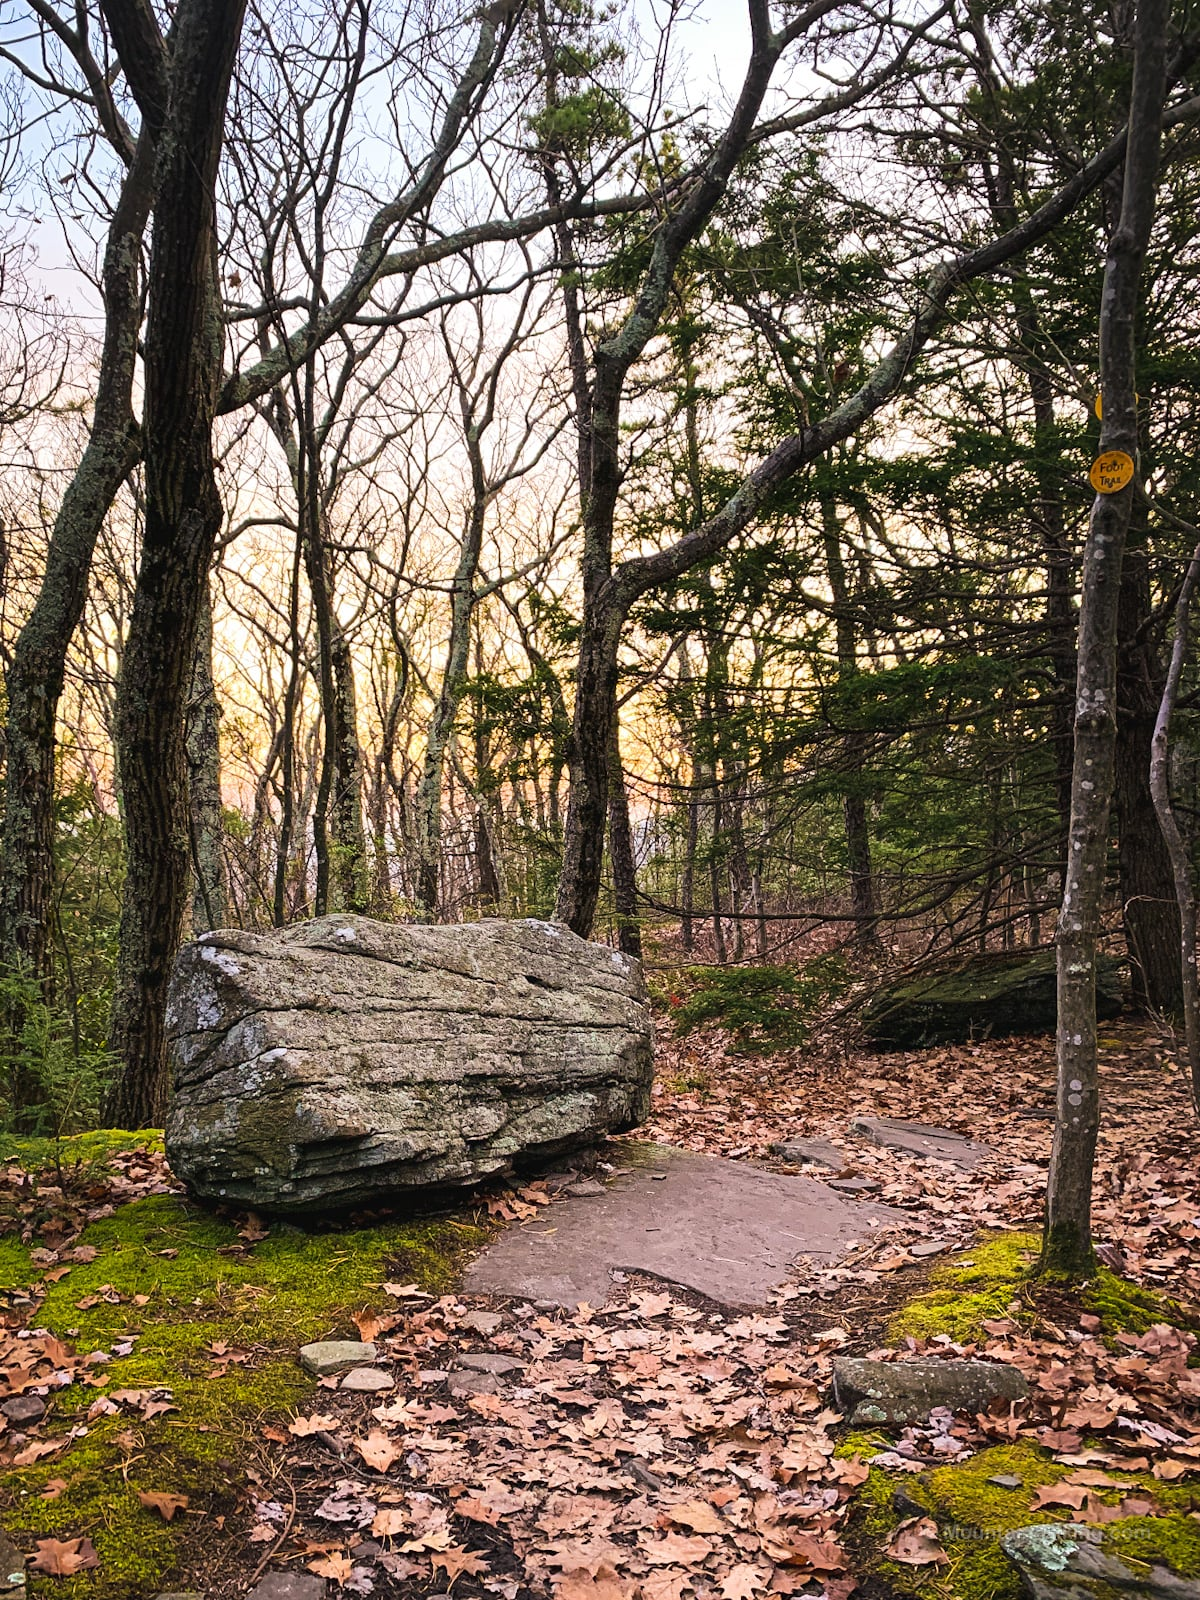 Huckleberry Point Trail: glacial erratic in woods